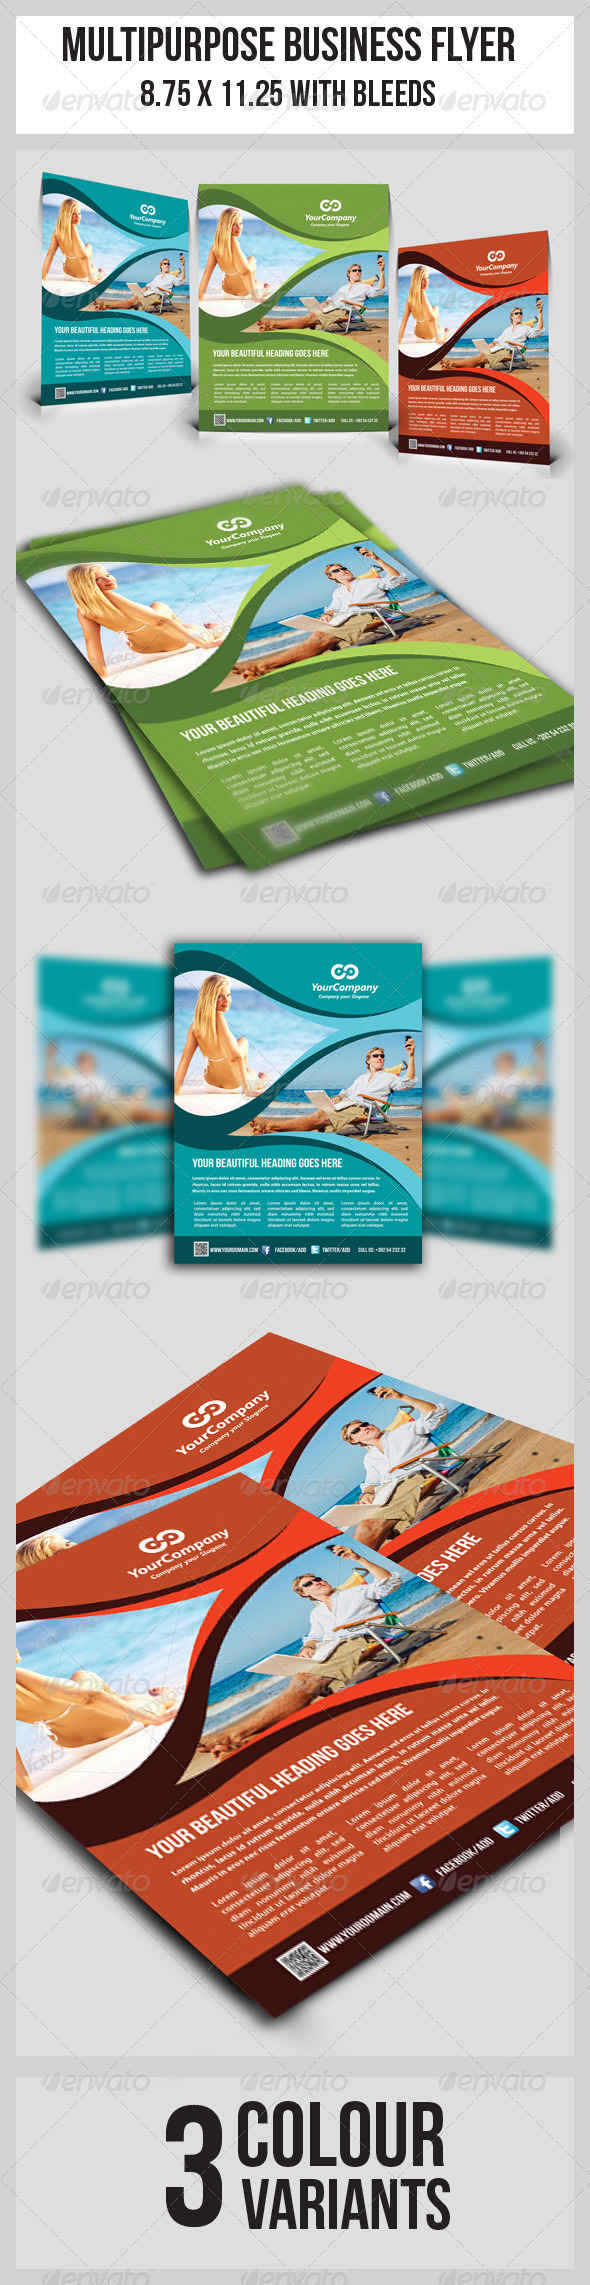 Tourism Flyer Vol.1 - Corporate Flyers